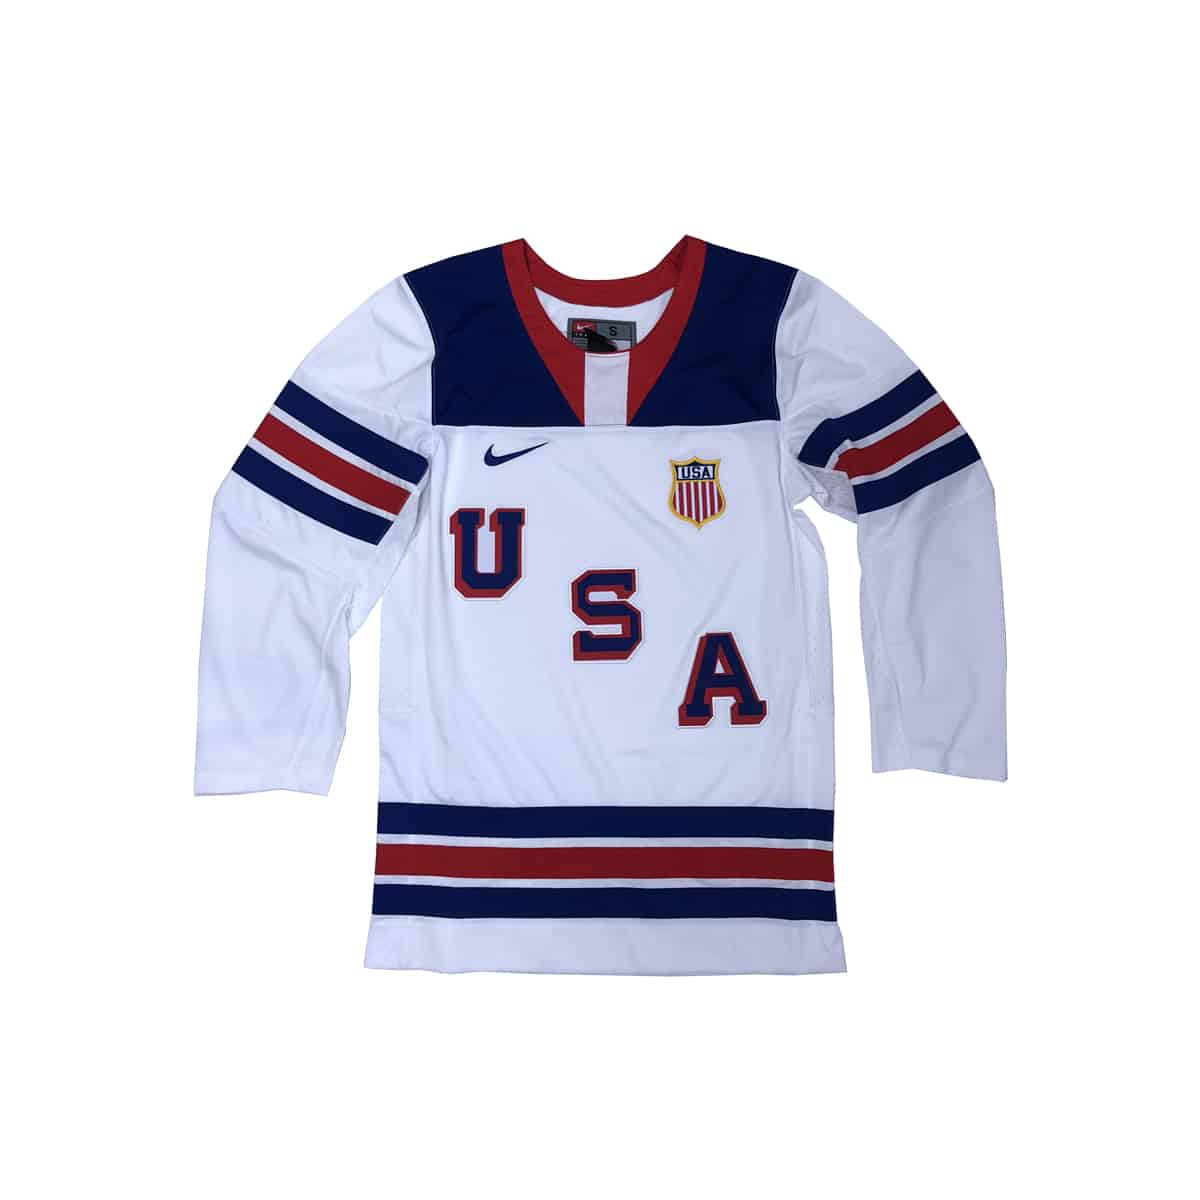 USA Hockey Nike 1960 Replica Jersey 1e0a20d99b0ef